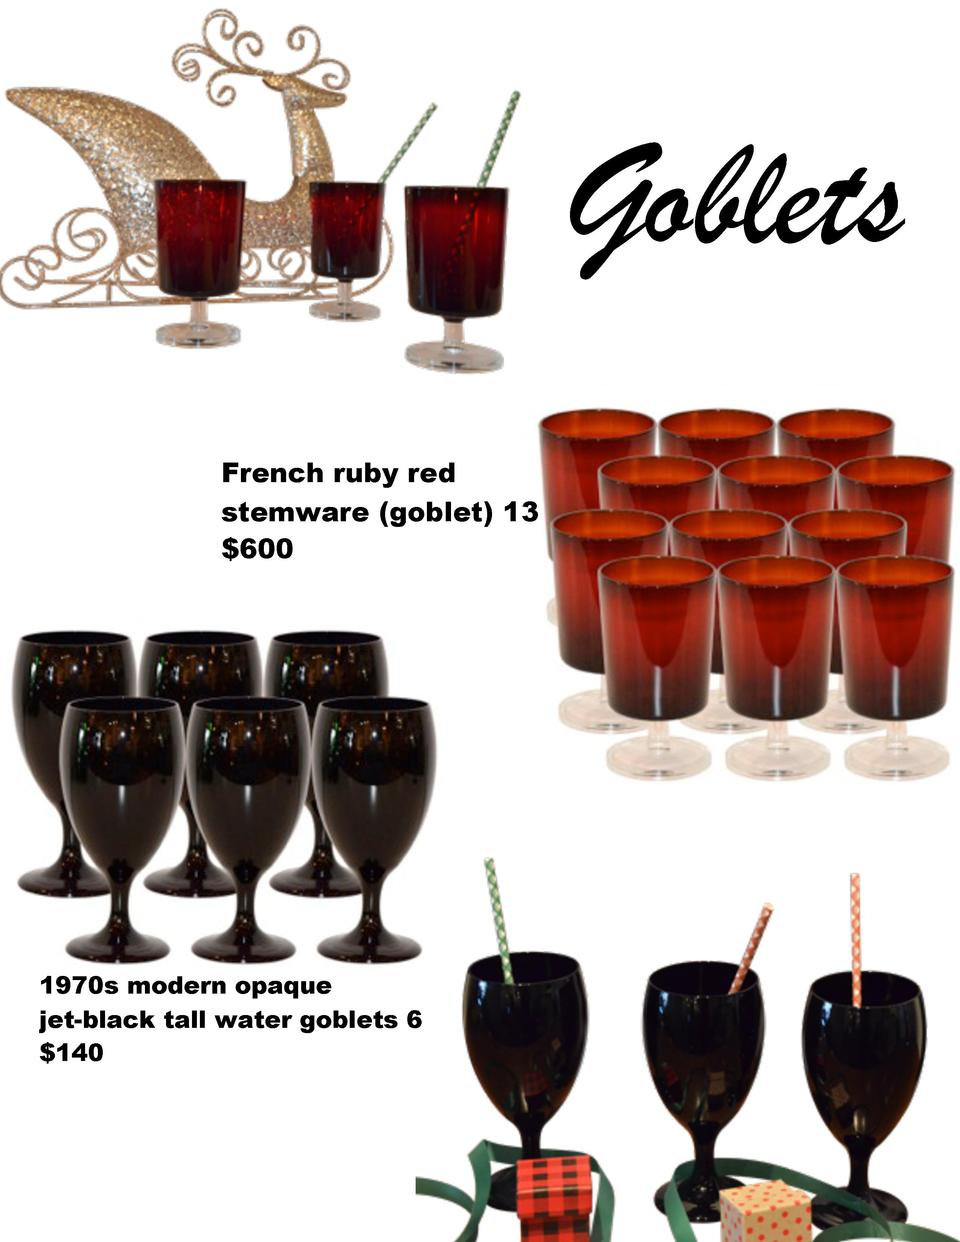 Goblets French ruby red stemware  goblet  13  600  1970s modern opaque jet-black tall water goblets 6  140